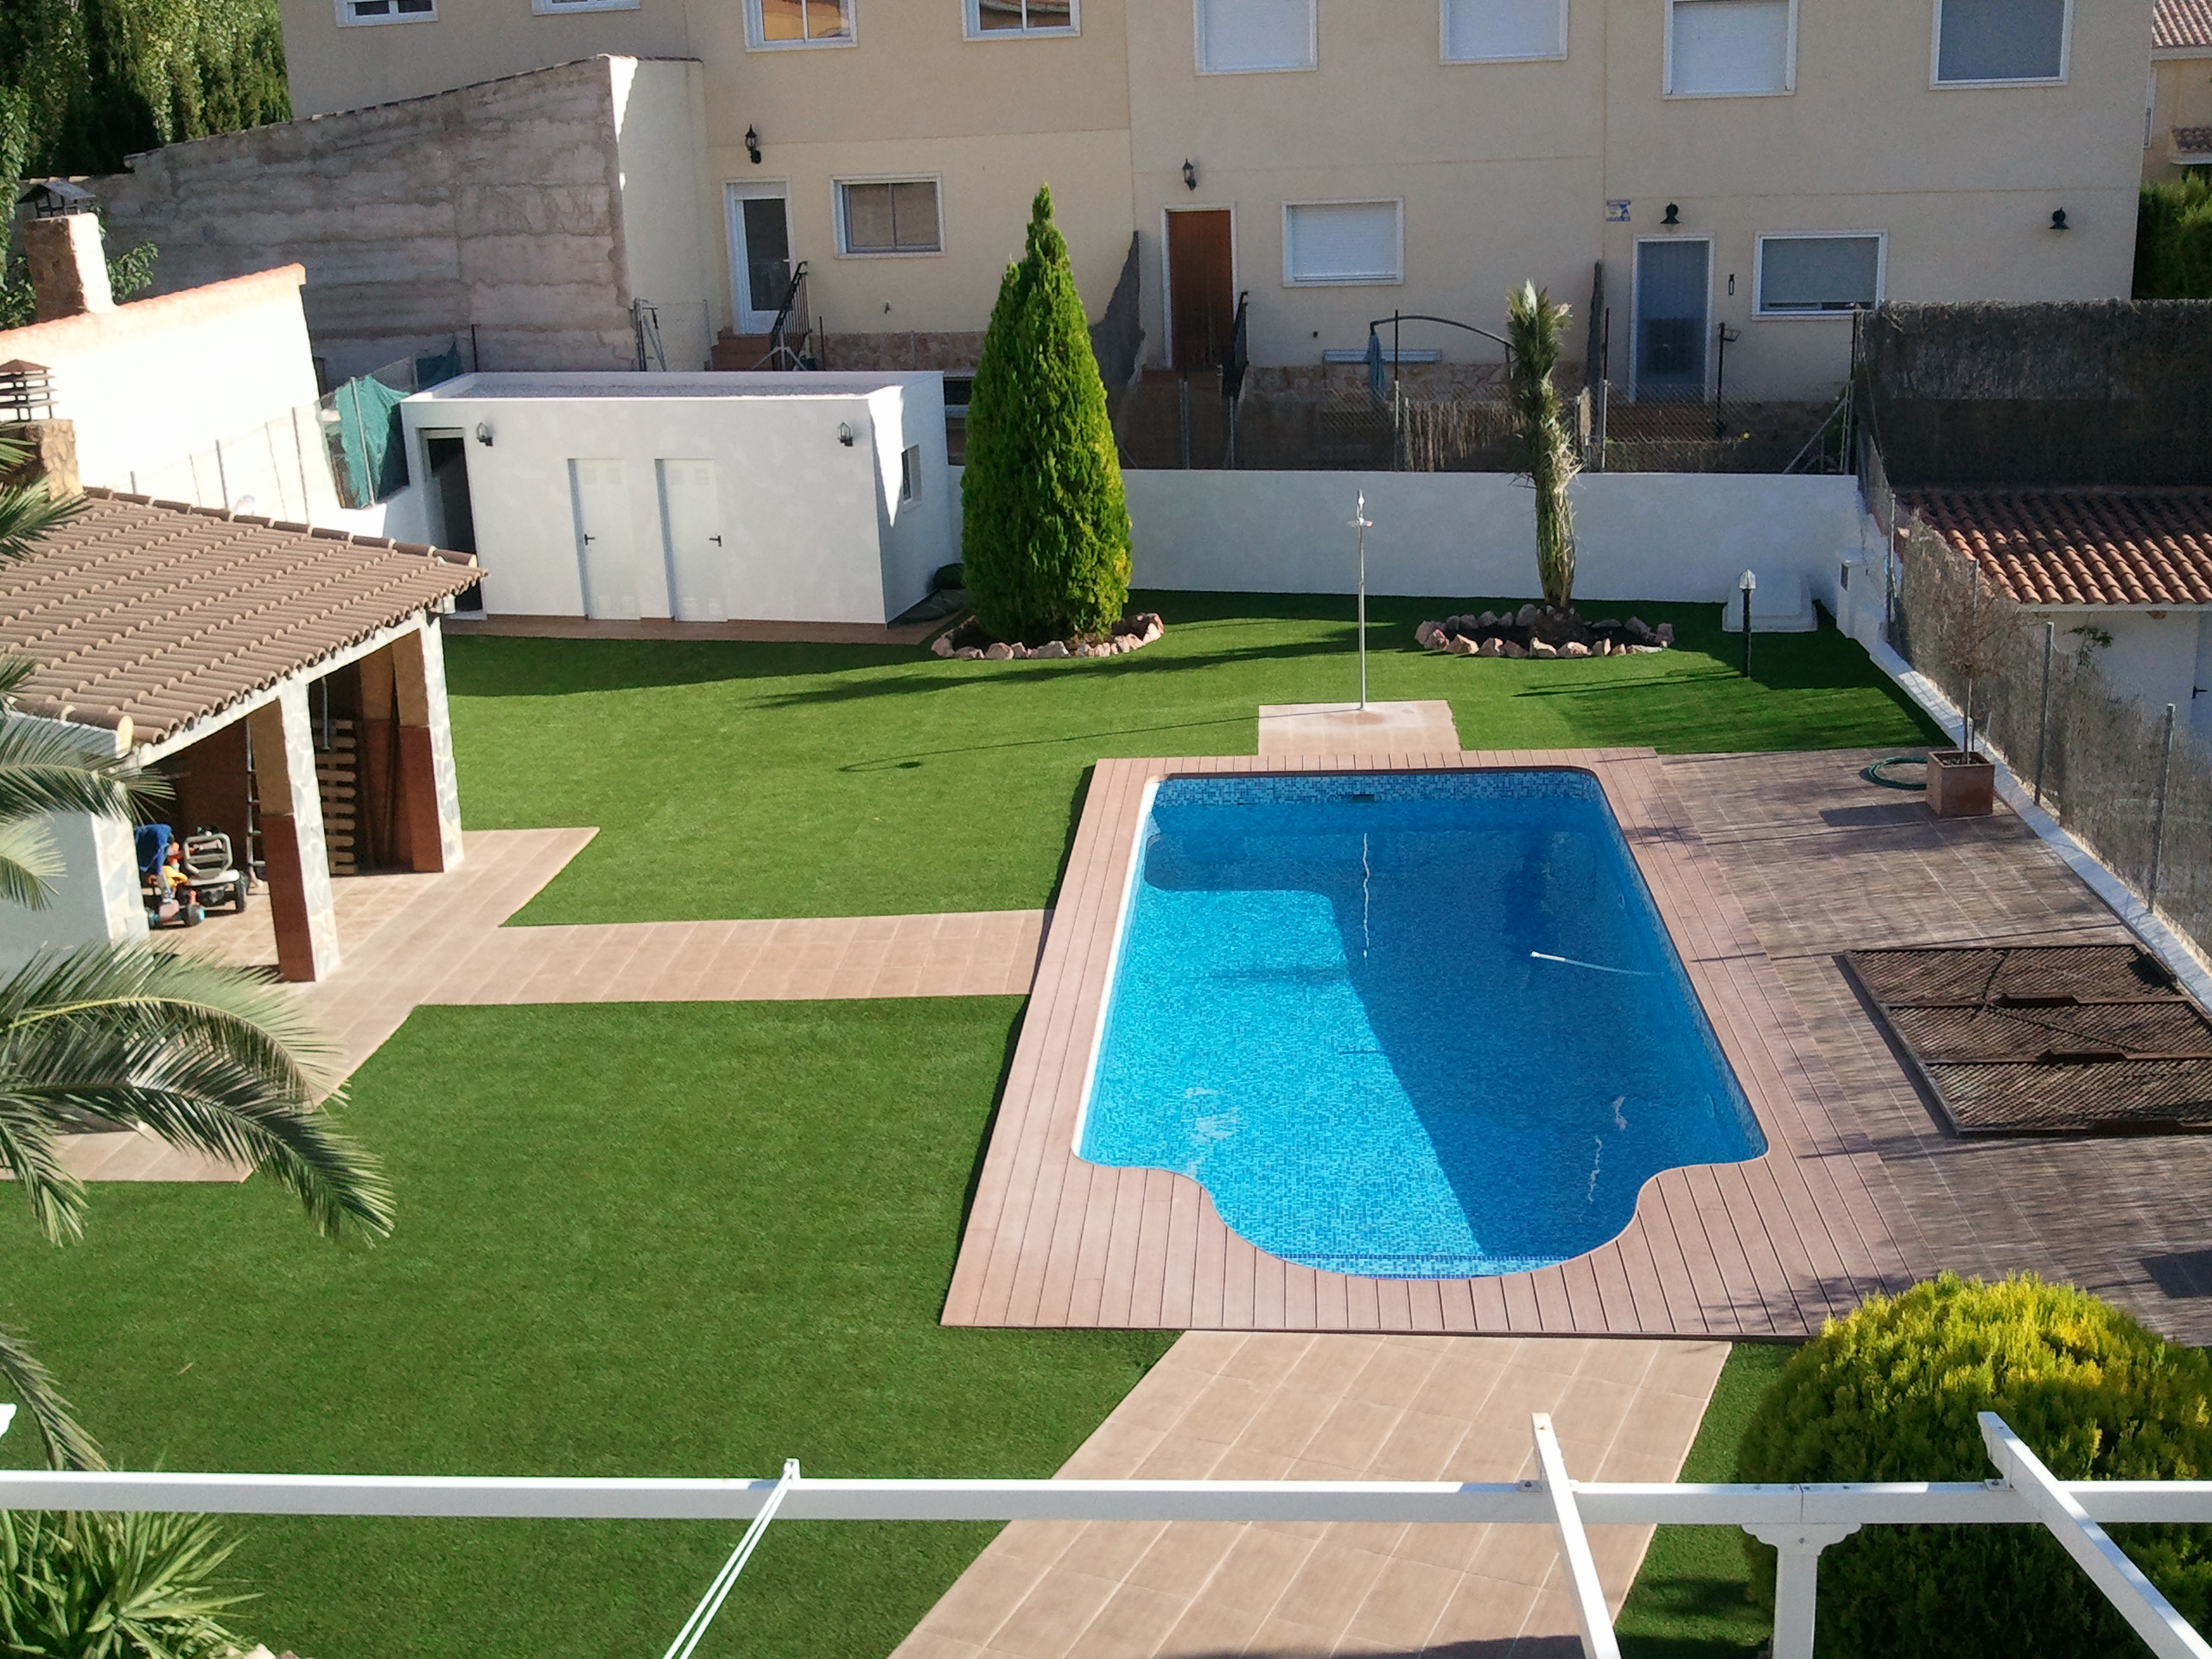 Construccion piscina y exterior 81648 for Construccion piscinas zaragoza